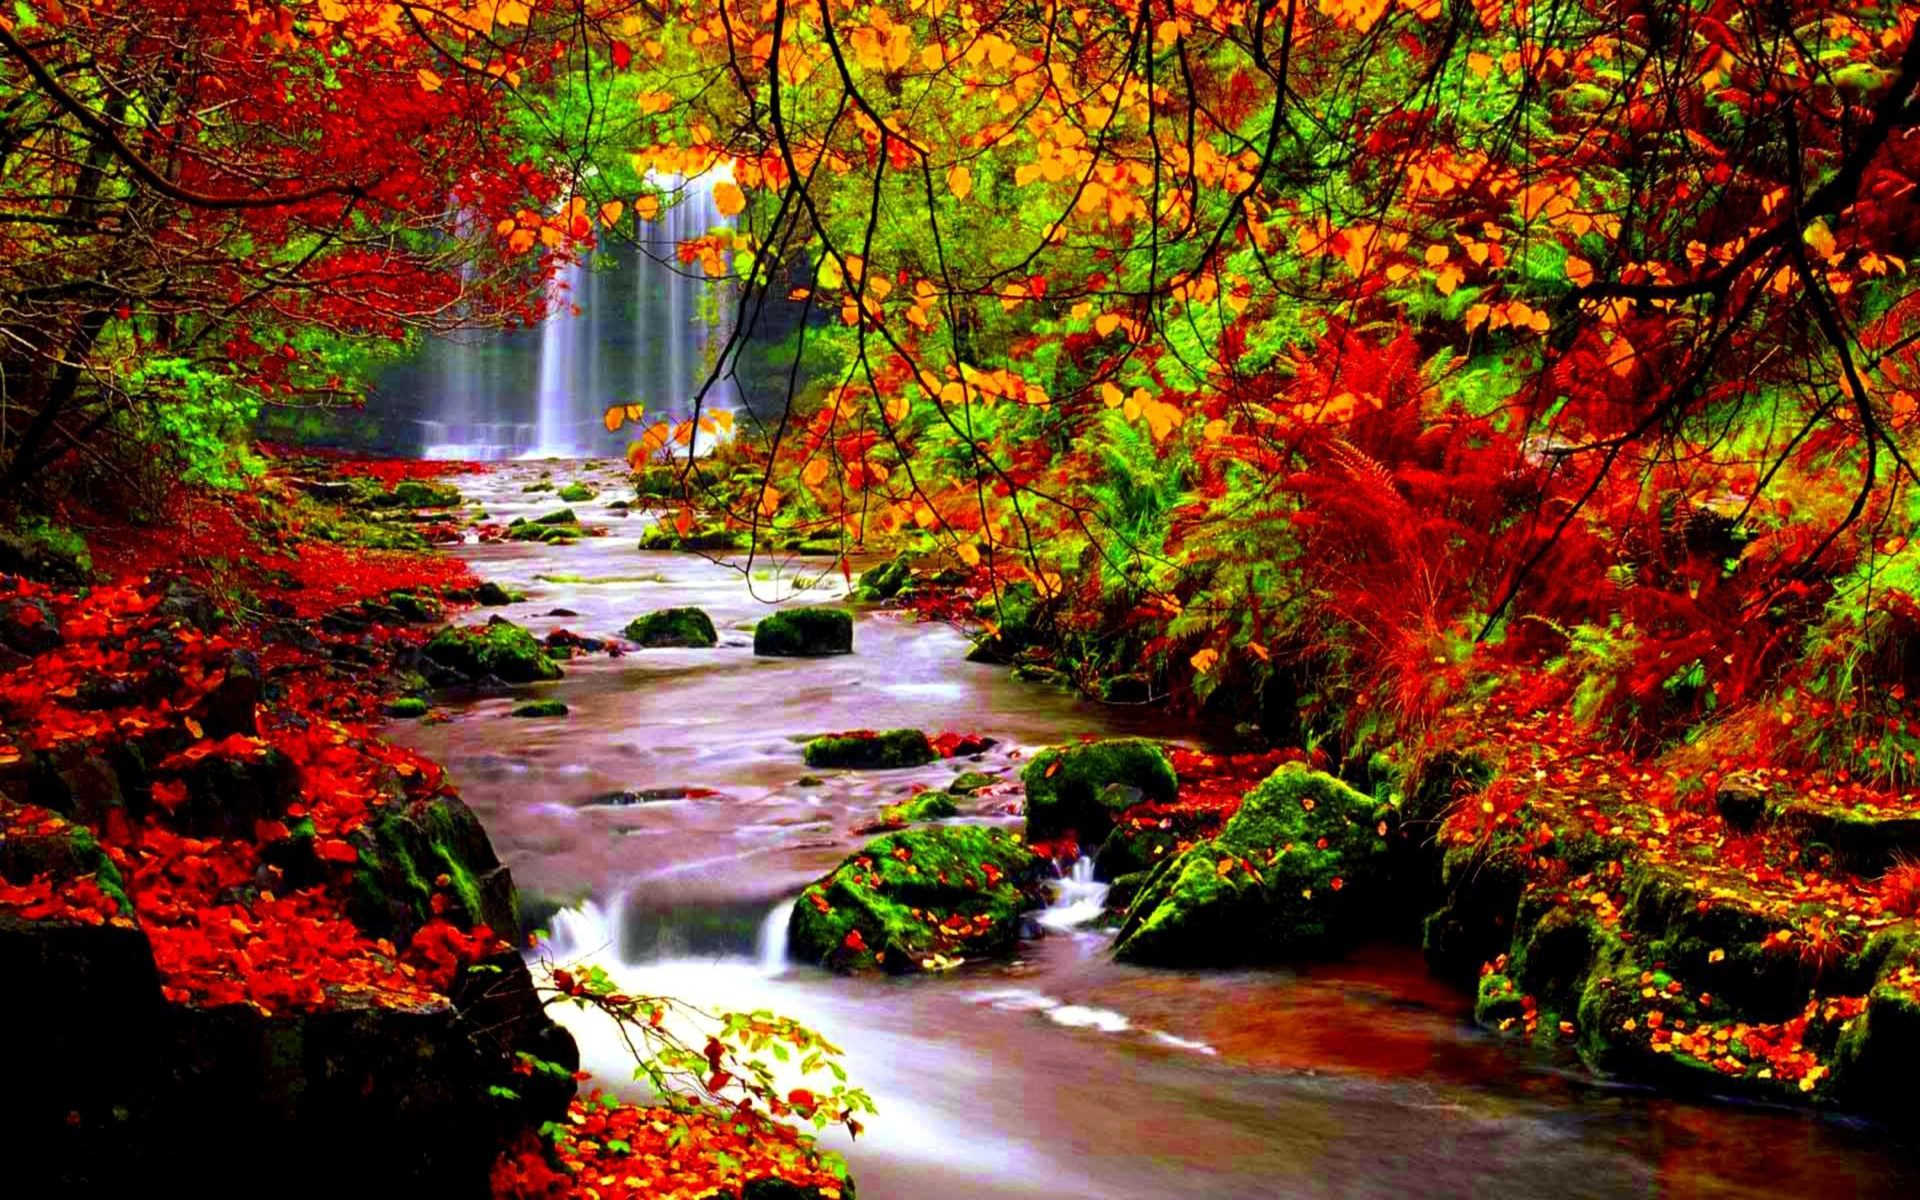 Water Falling Wallpaper Desktop Autumn Scenery Stream River In Autumn Trees With Red